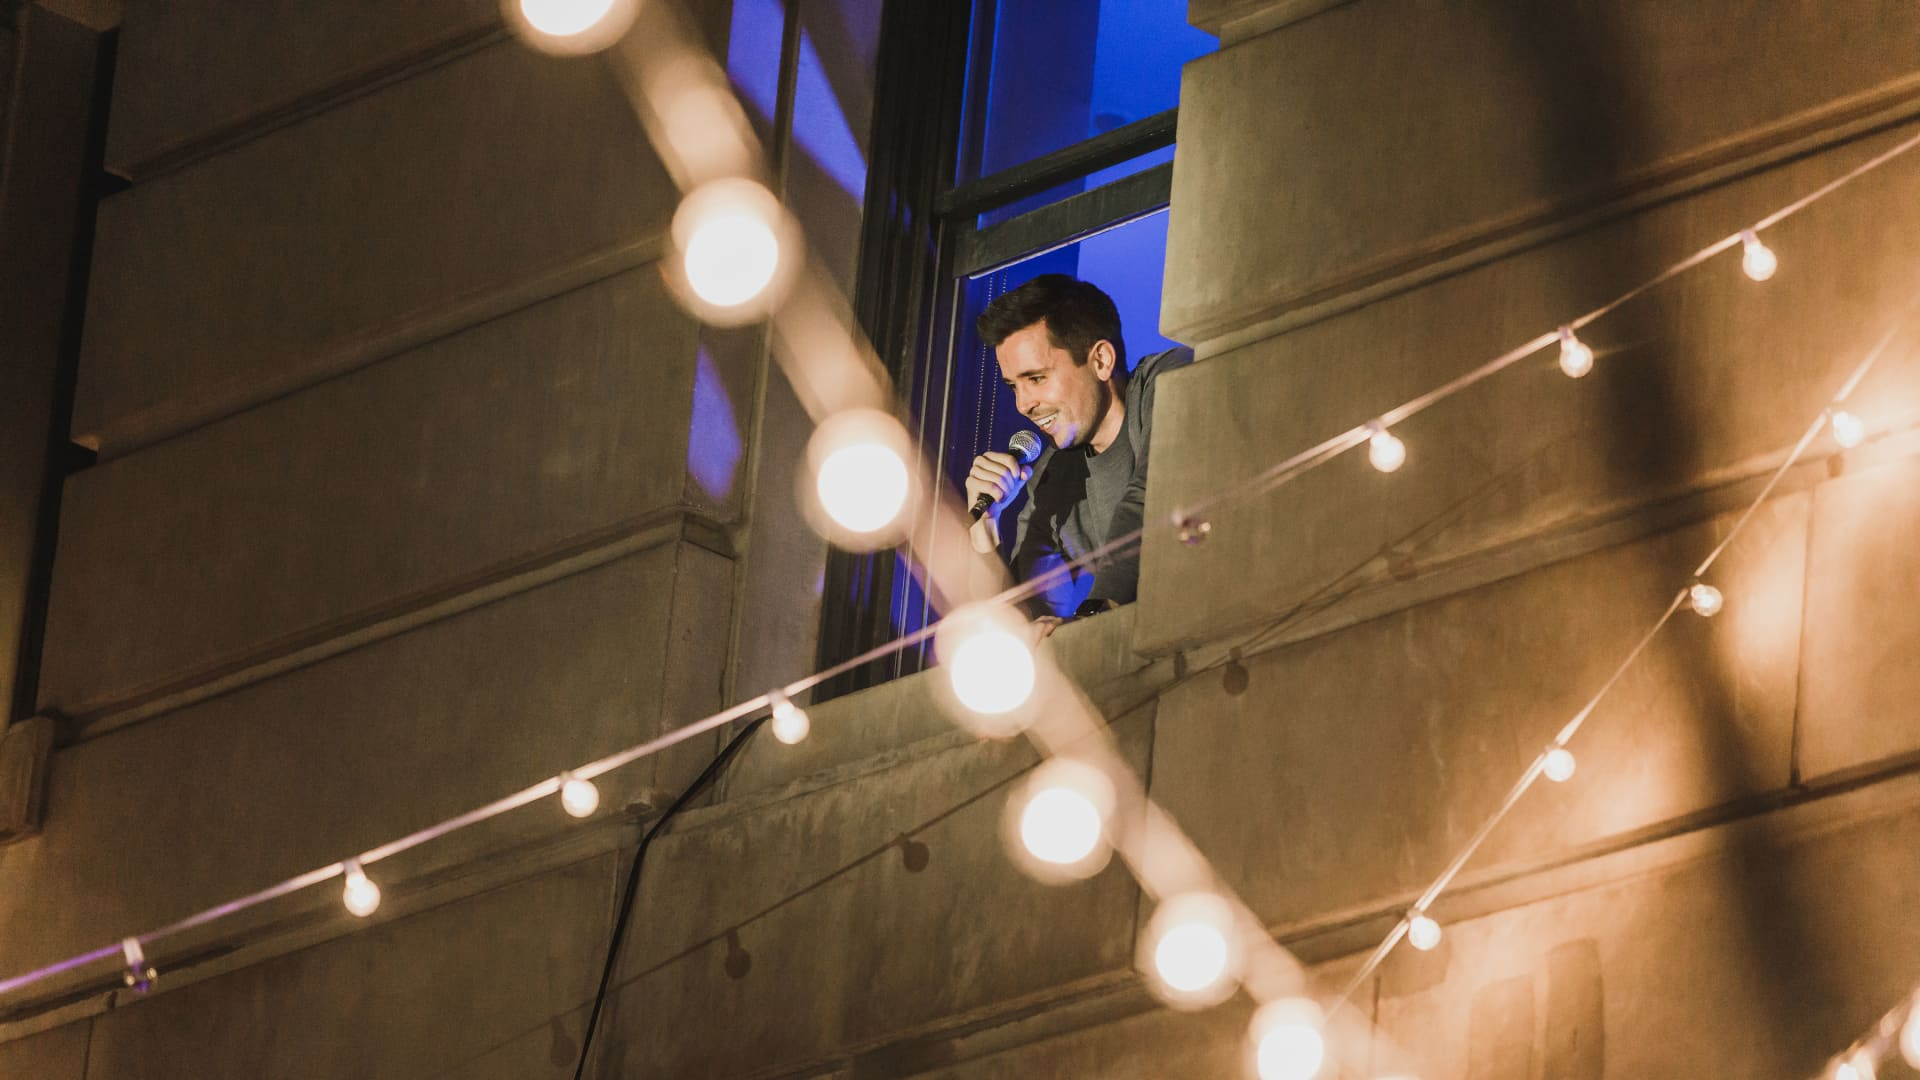 Broadway actor Matt Doyle sings out the window of Room 201 at the Ace Hotel to diners down below.